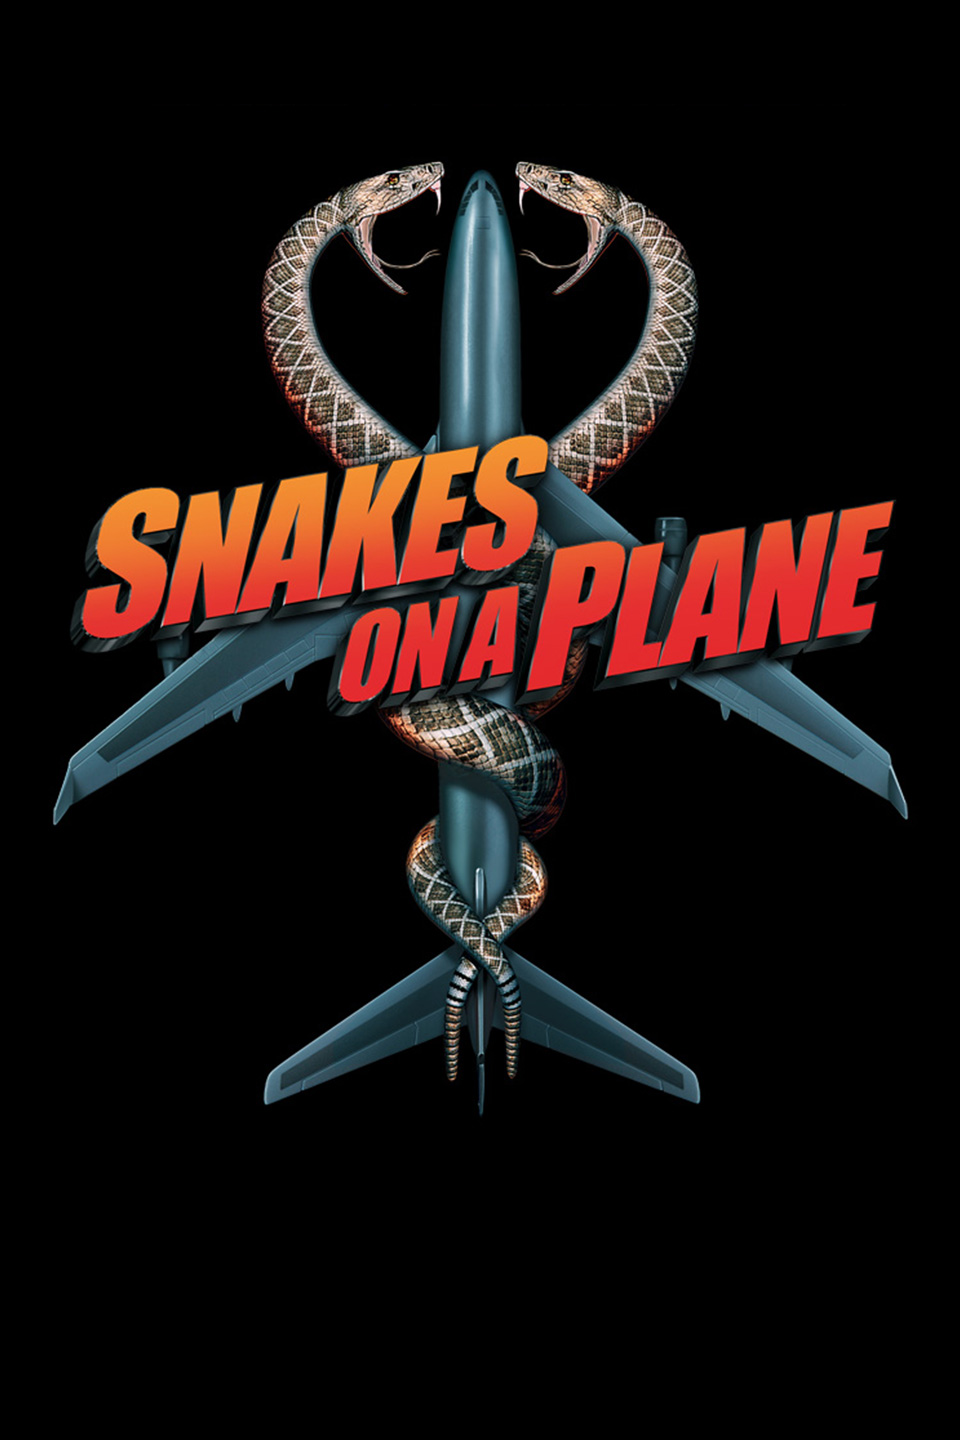 Snakes-On-A-Plane-960x1440